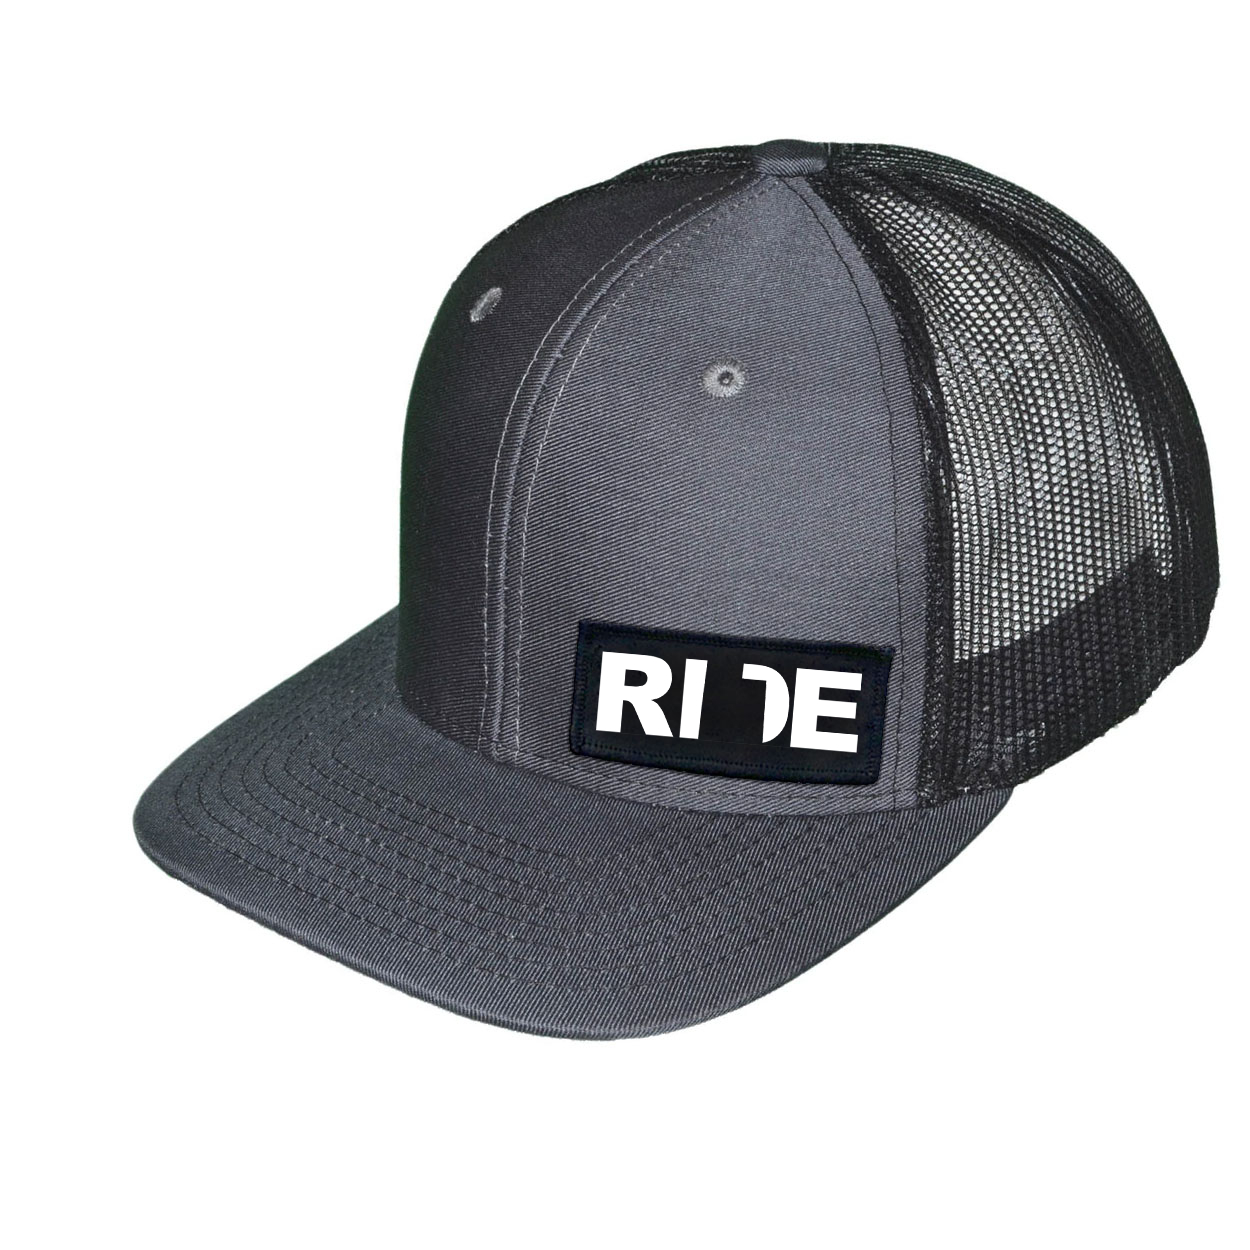 Ride Utah Night Out Woven Patch Snapback Trucker Hat Dark Gray/Black (White Logo)